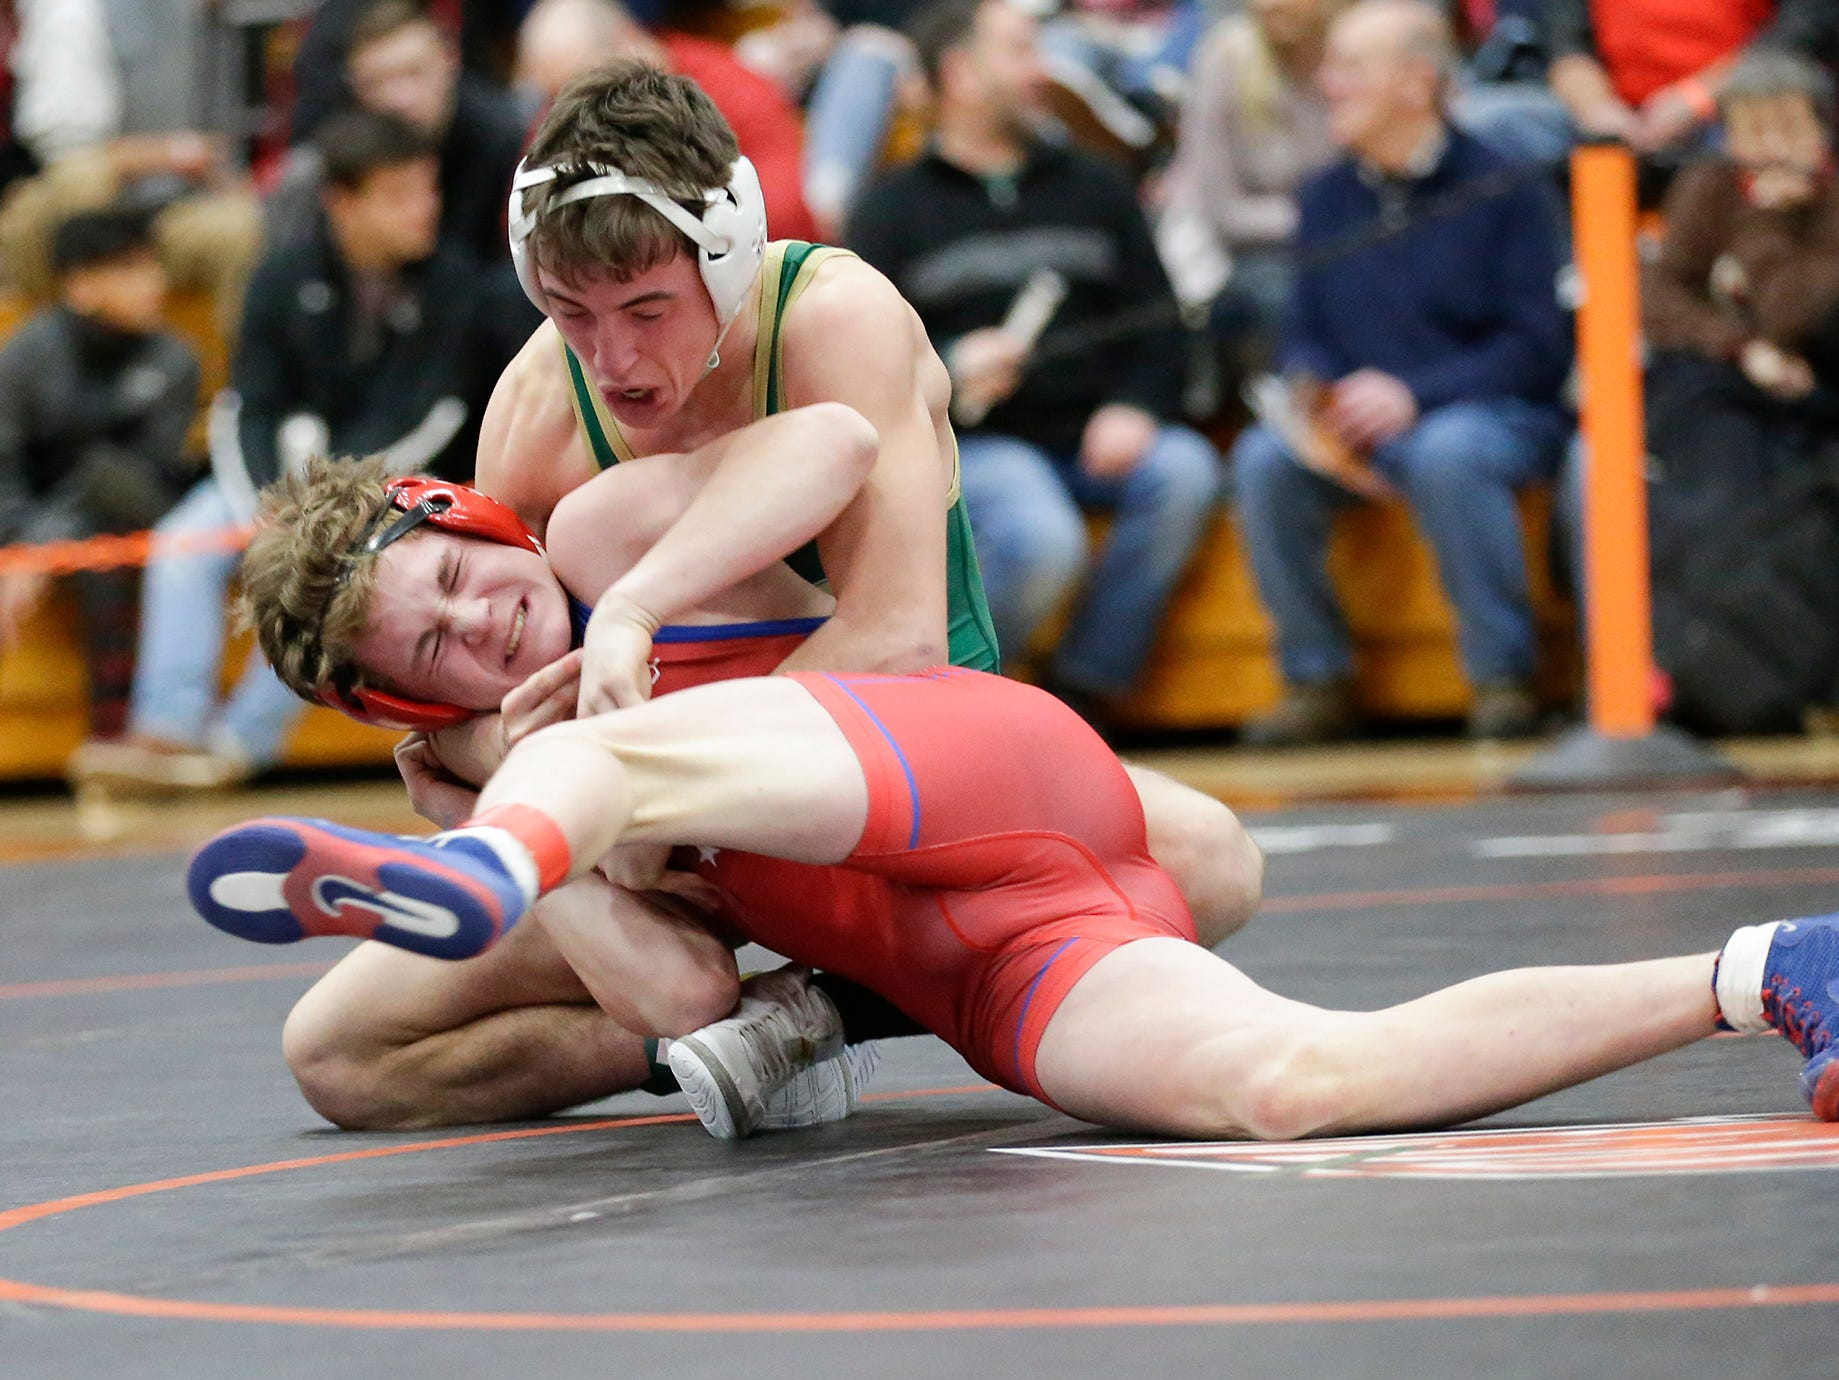 Jake Melzer of Slinger High School wrestles Cade Schmitz of Oshkosh North High School in the 126 pound weight class during the WIAA sectionals Saturday, February 16, 2019 in Hartford, Wis. Schmitz won with a score of 6-4. Doug Raflik/USA TODAY NETWORK-Wisconsin